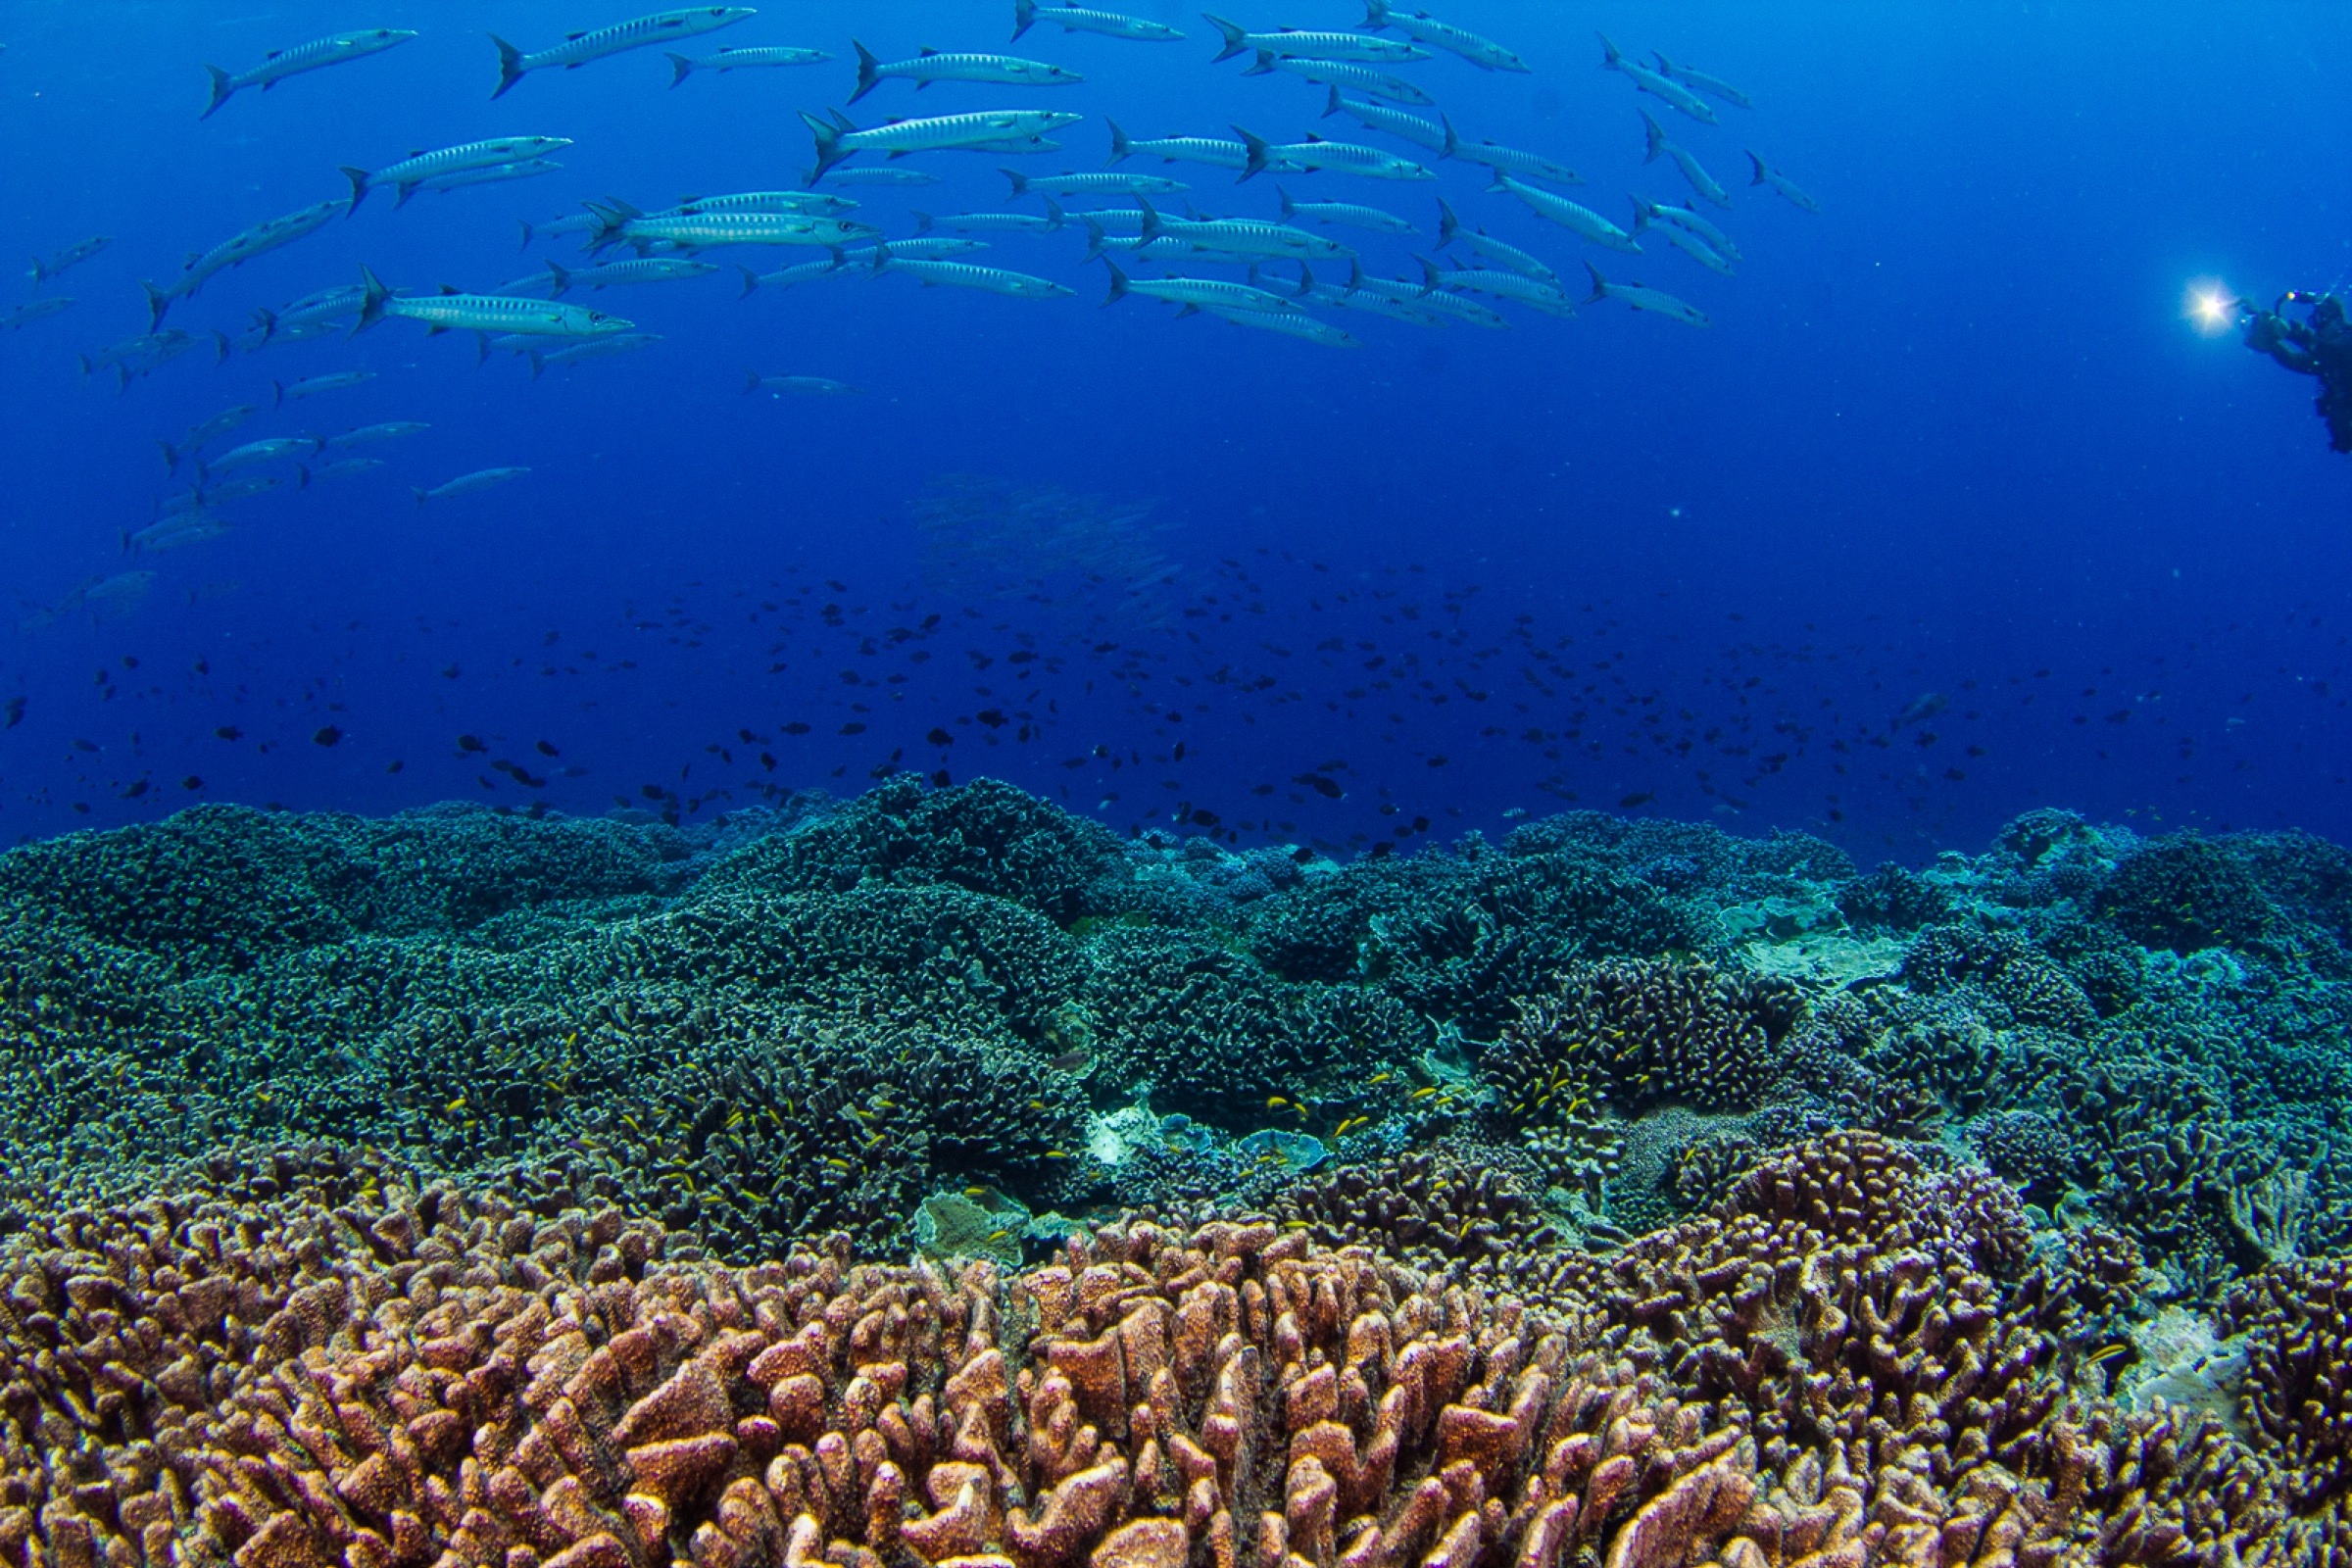 A school of blackfin baracuda (Sphyraena qenie) swim in to investigate a diver along a current-swept reef in the central Pacific. Photograph by Brian Zgliczynski/100 Island Challenge